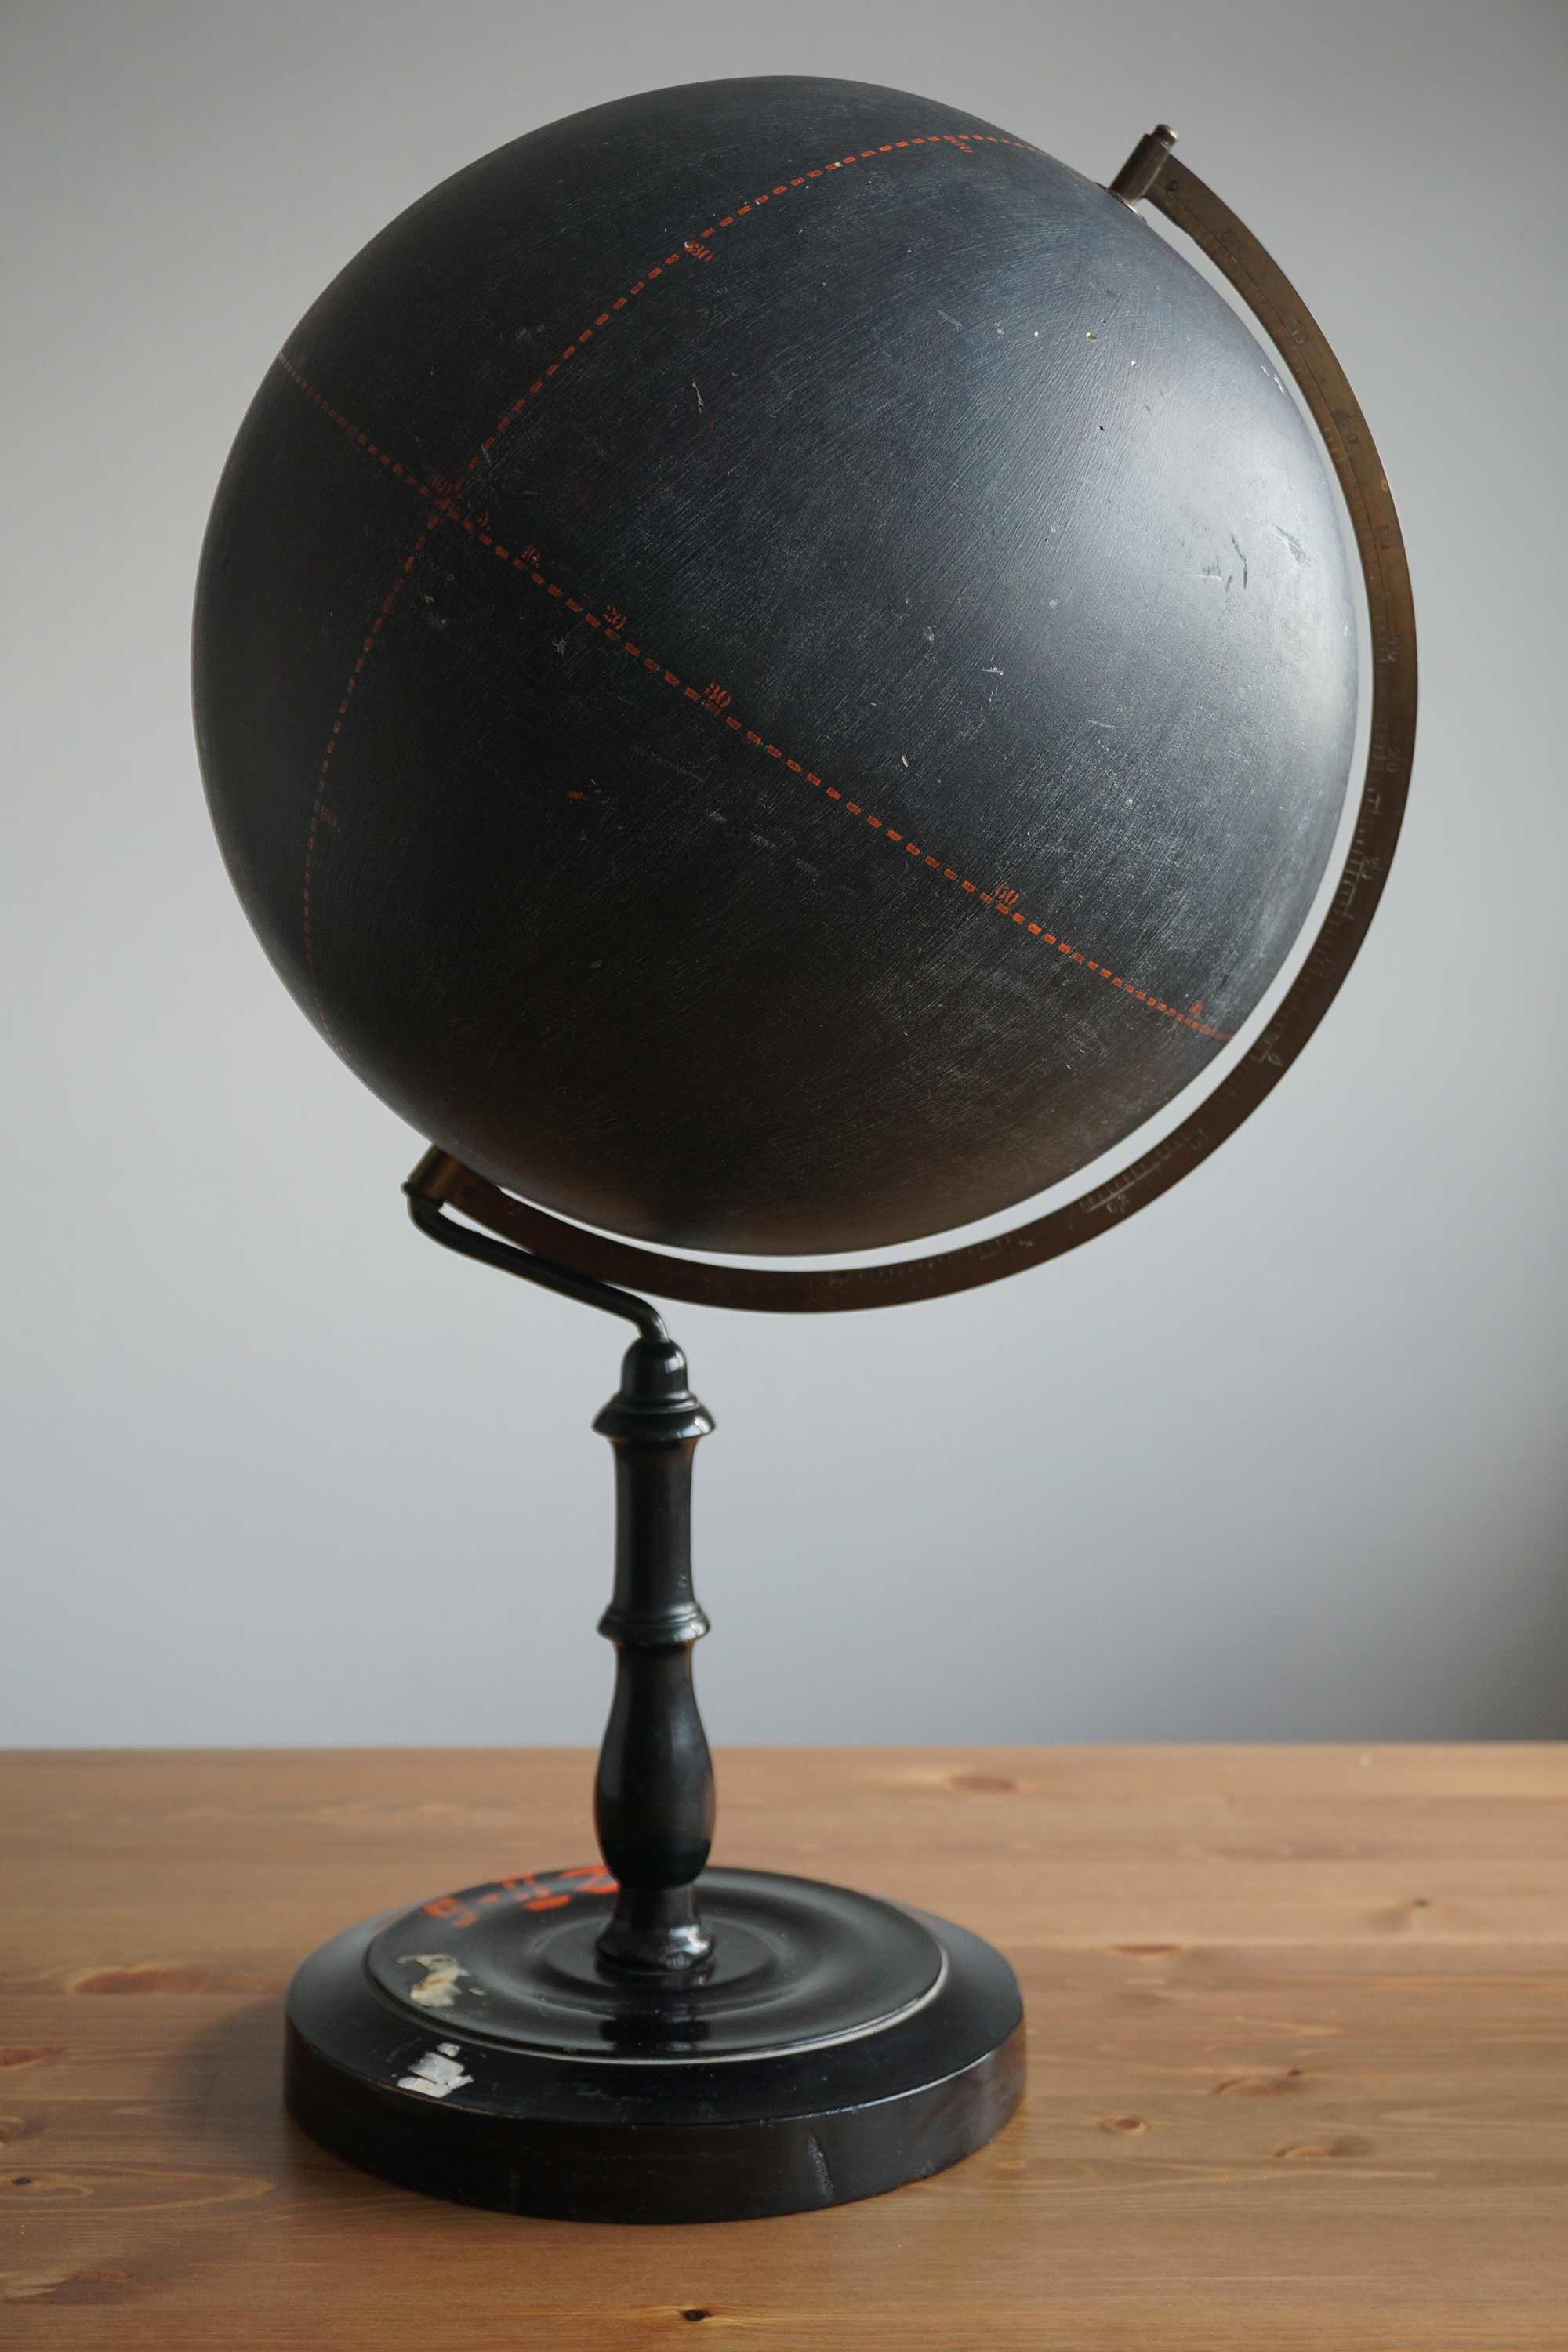 Rare slated surface Globe by Felkl & Son